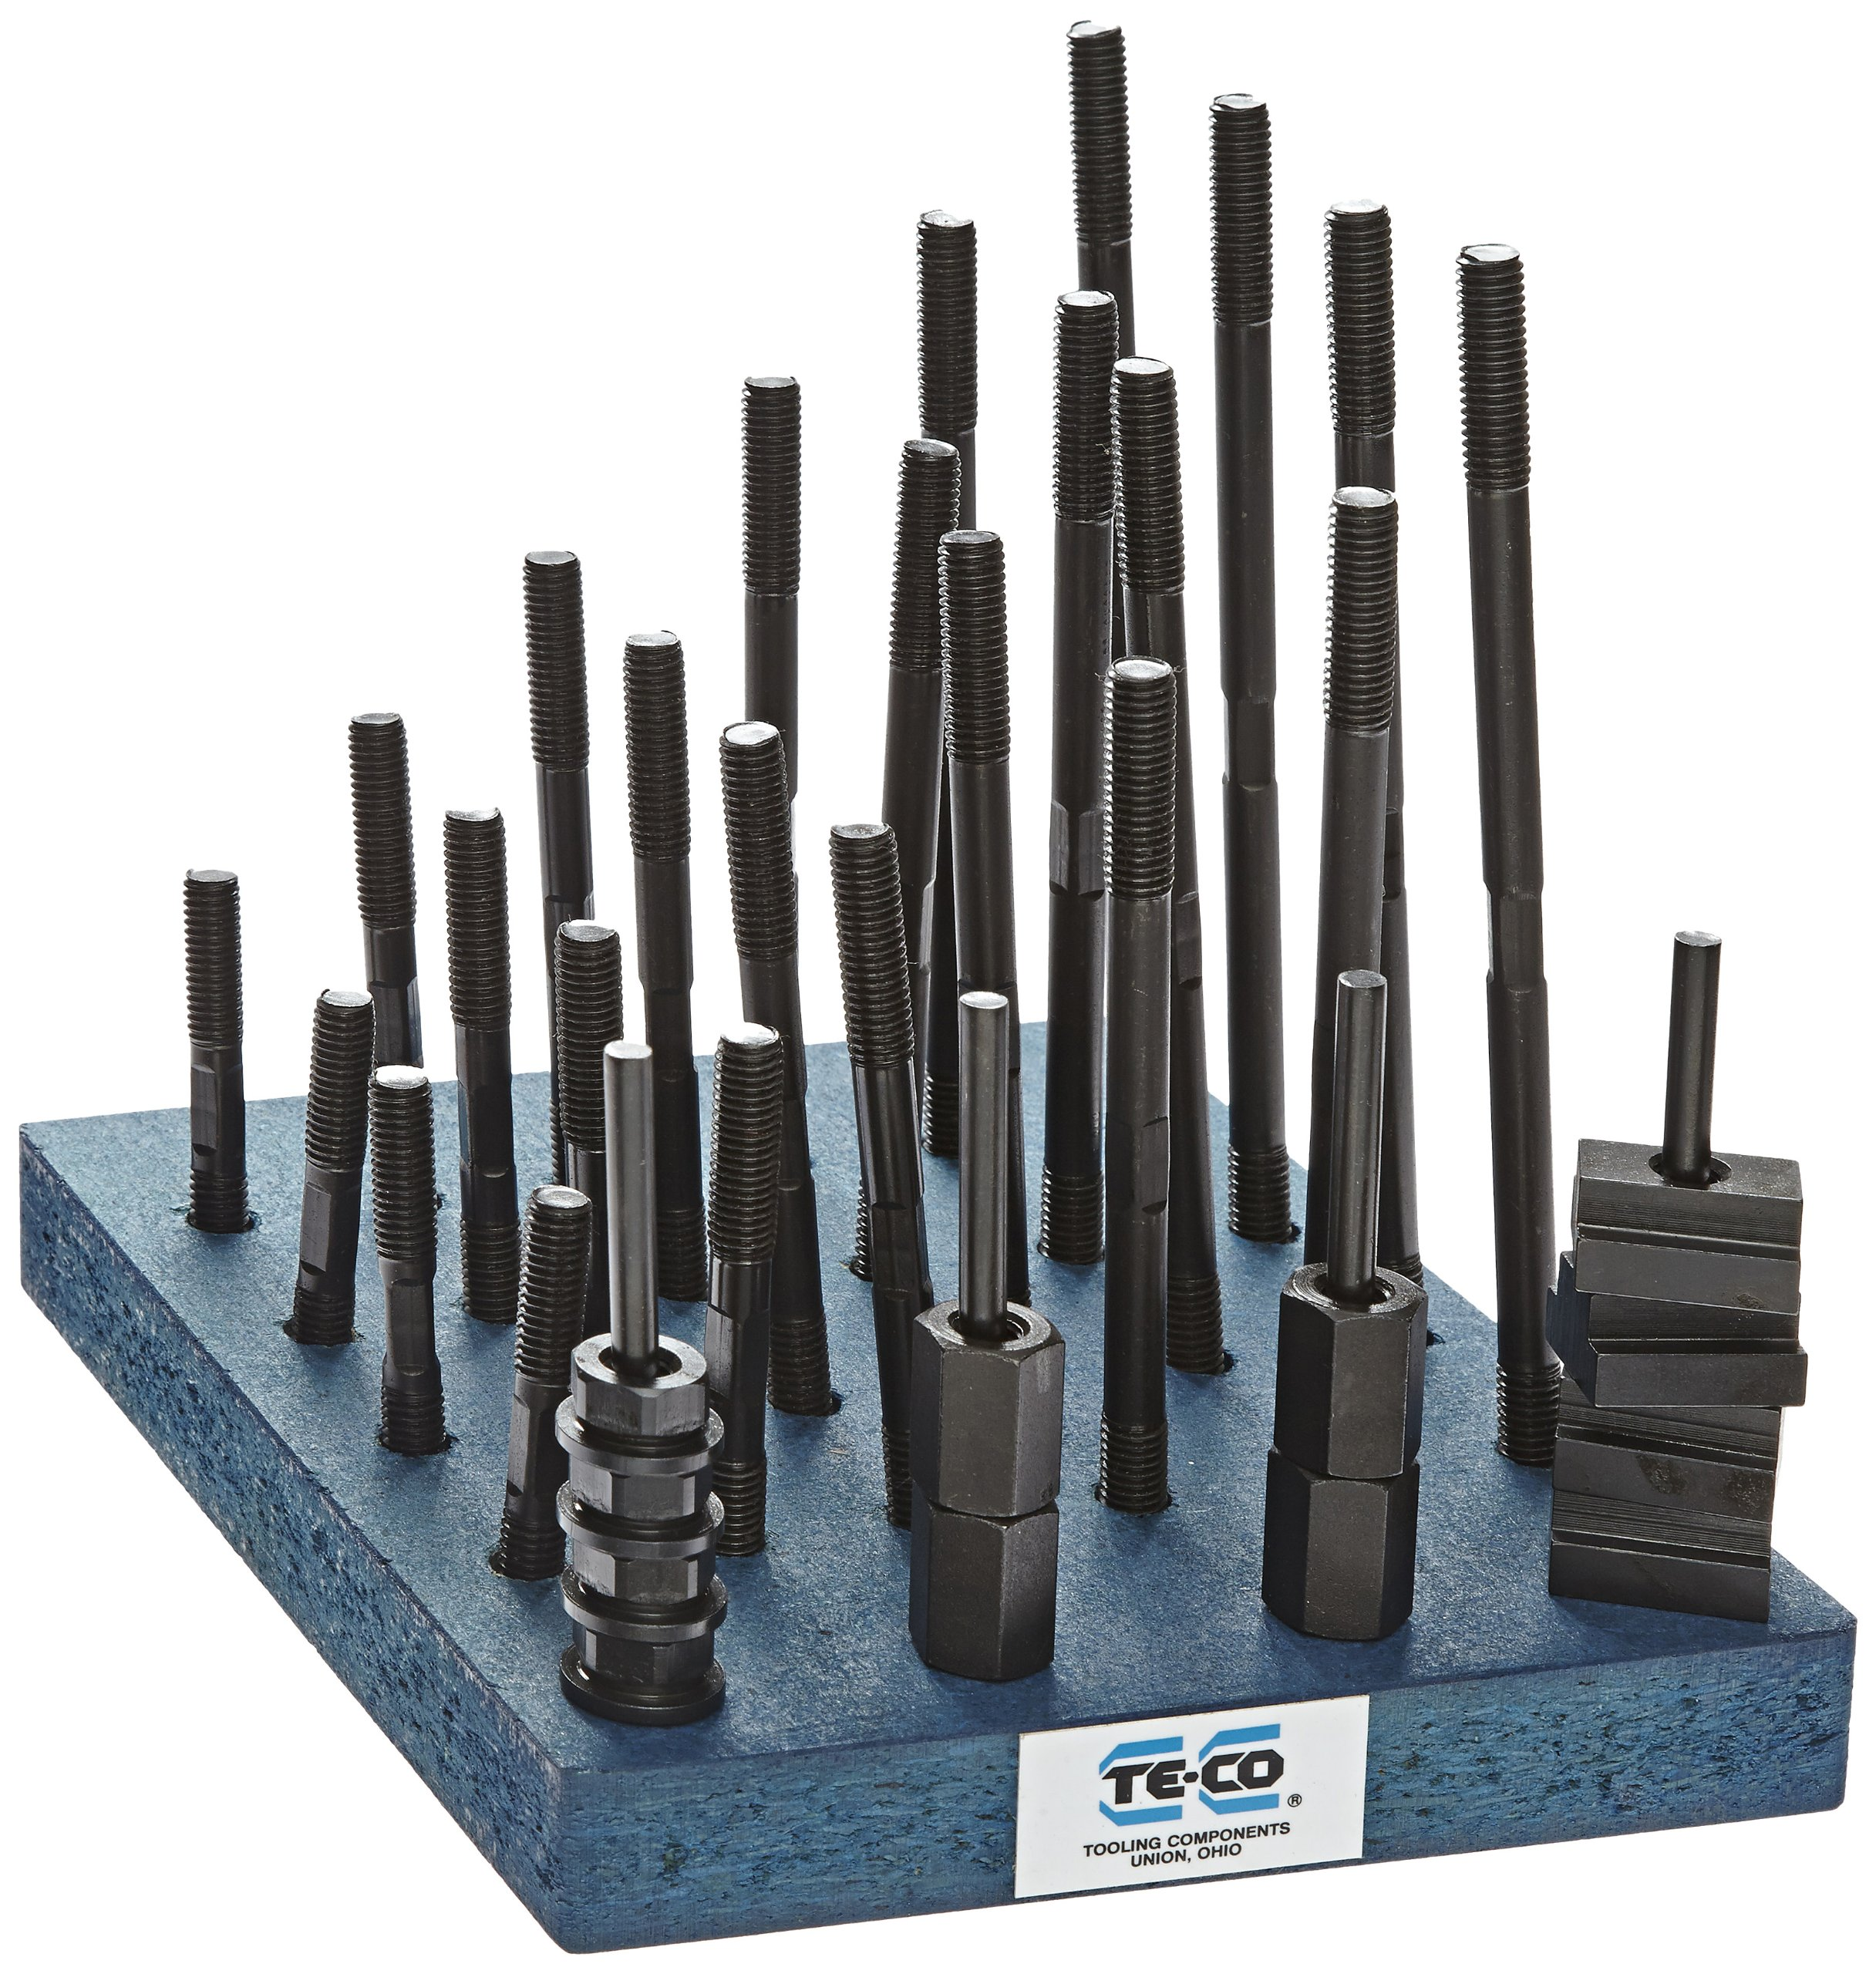 Te-Co 20604 38 Piece T-Nut and Stud Kit, 3/8''-16 Stud x 9/16'' Table T-Slot by Small Parts